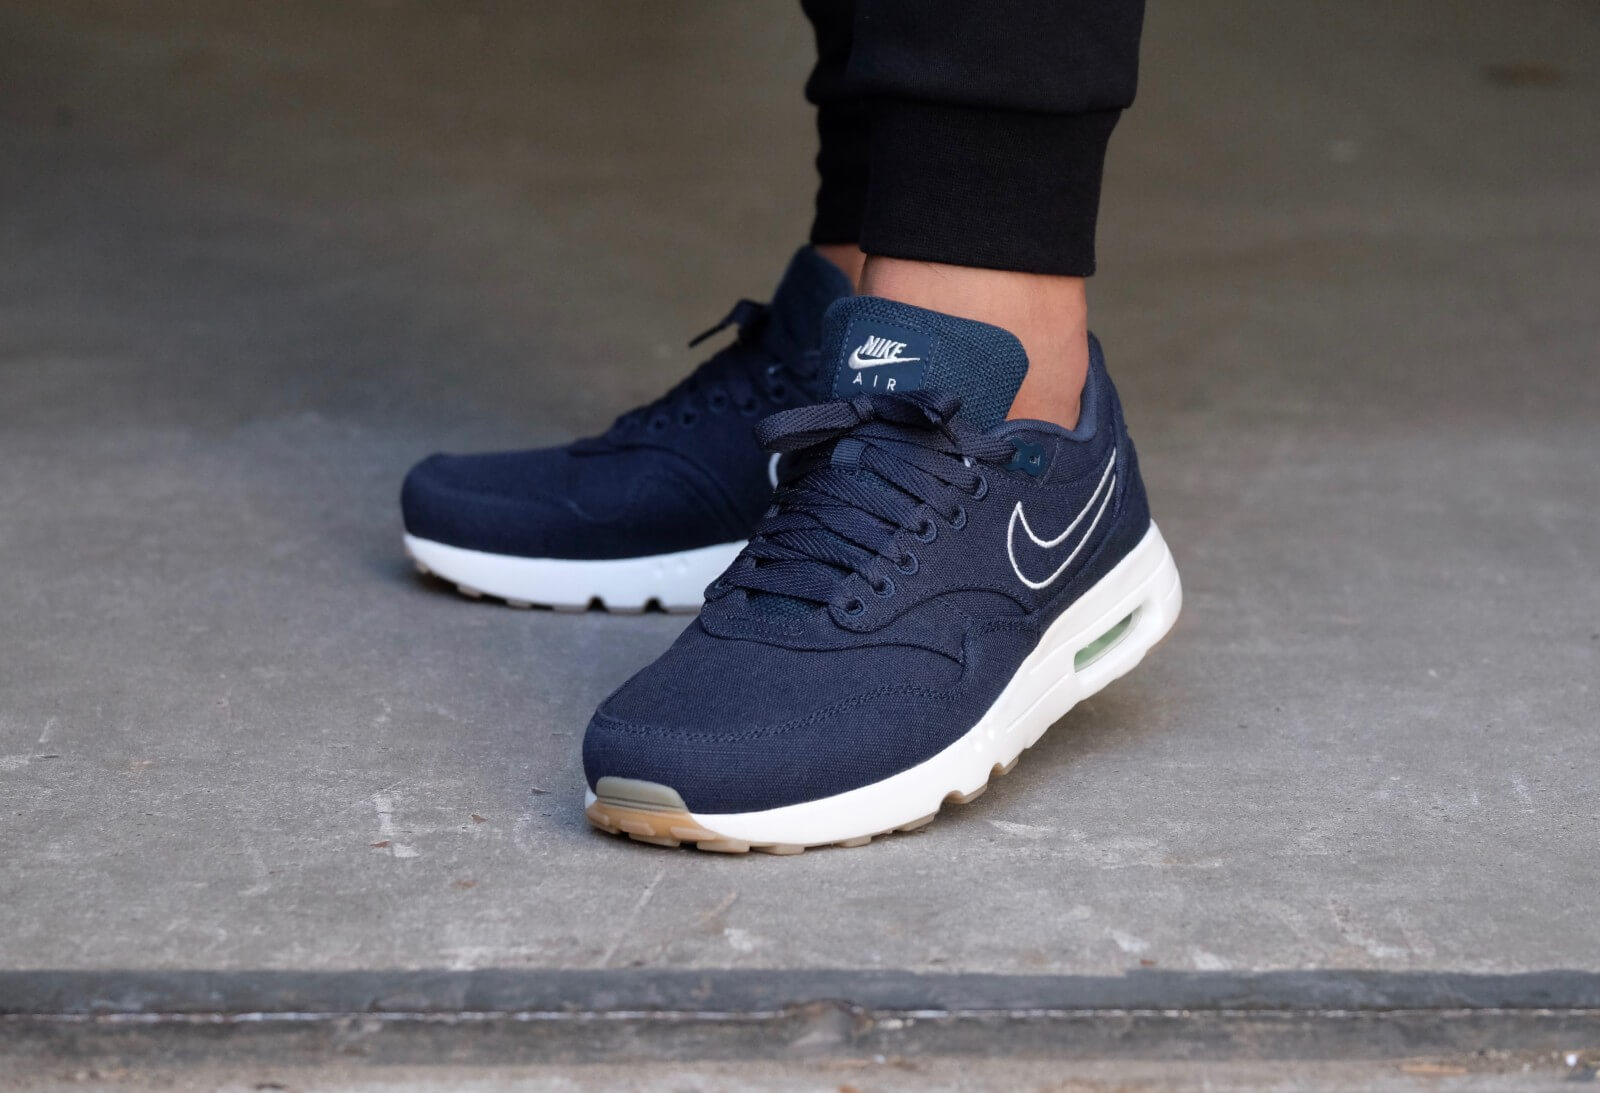 Nike Air Max 180: Black Sneakers: Nike Air 180 It is